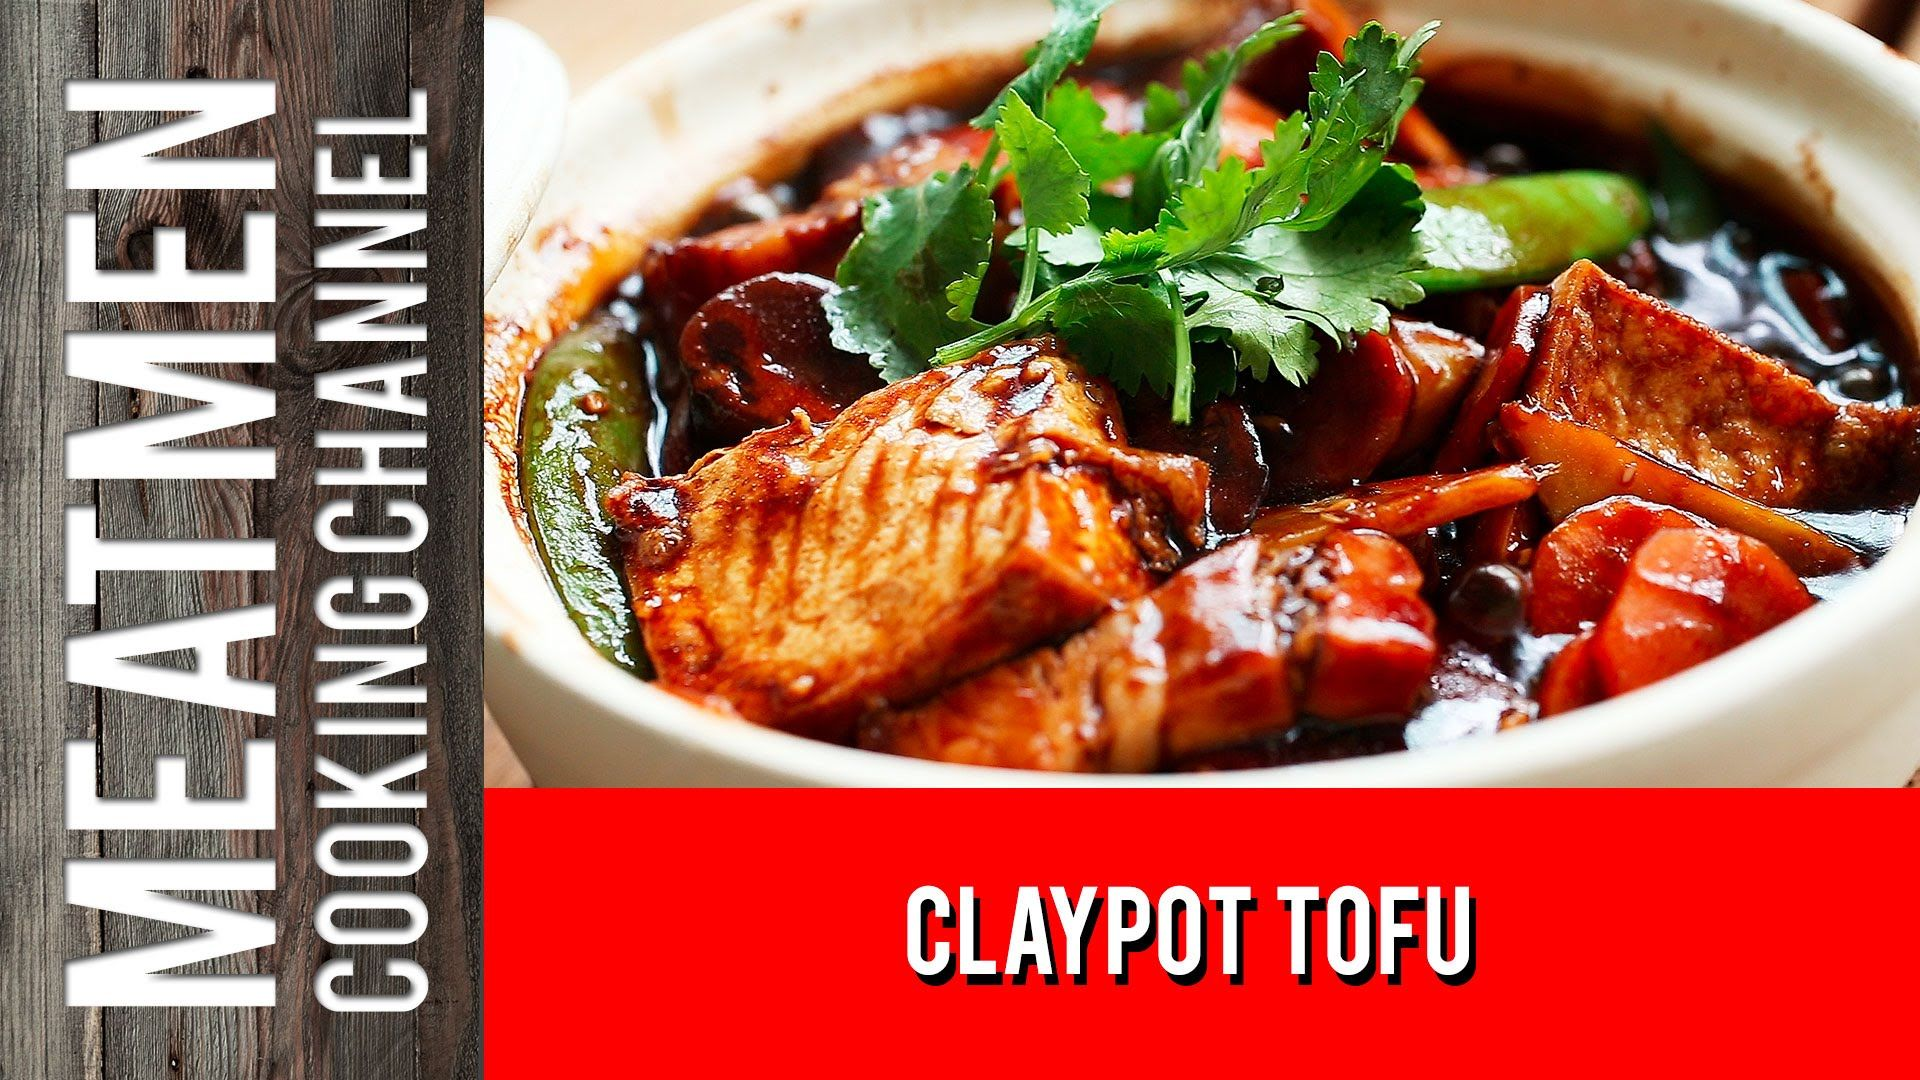 Claypot tofu youtube lunchbox dinerbox ideetjes claypot tofu the meatmen your local cooking channel forumfinder Image collections